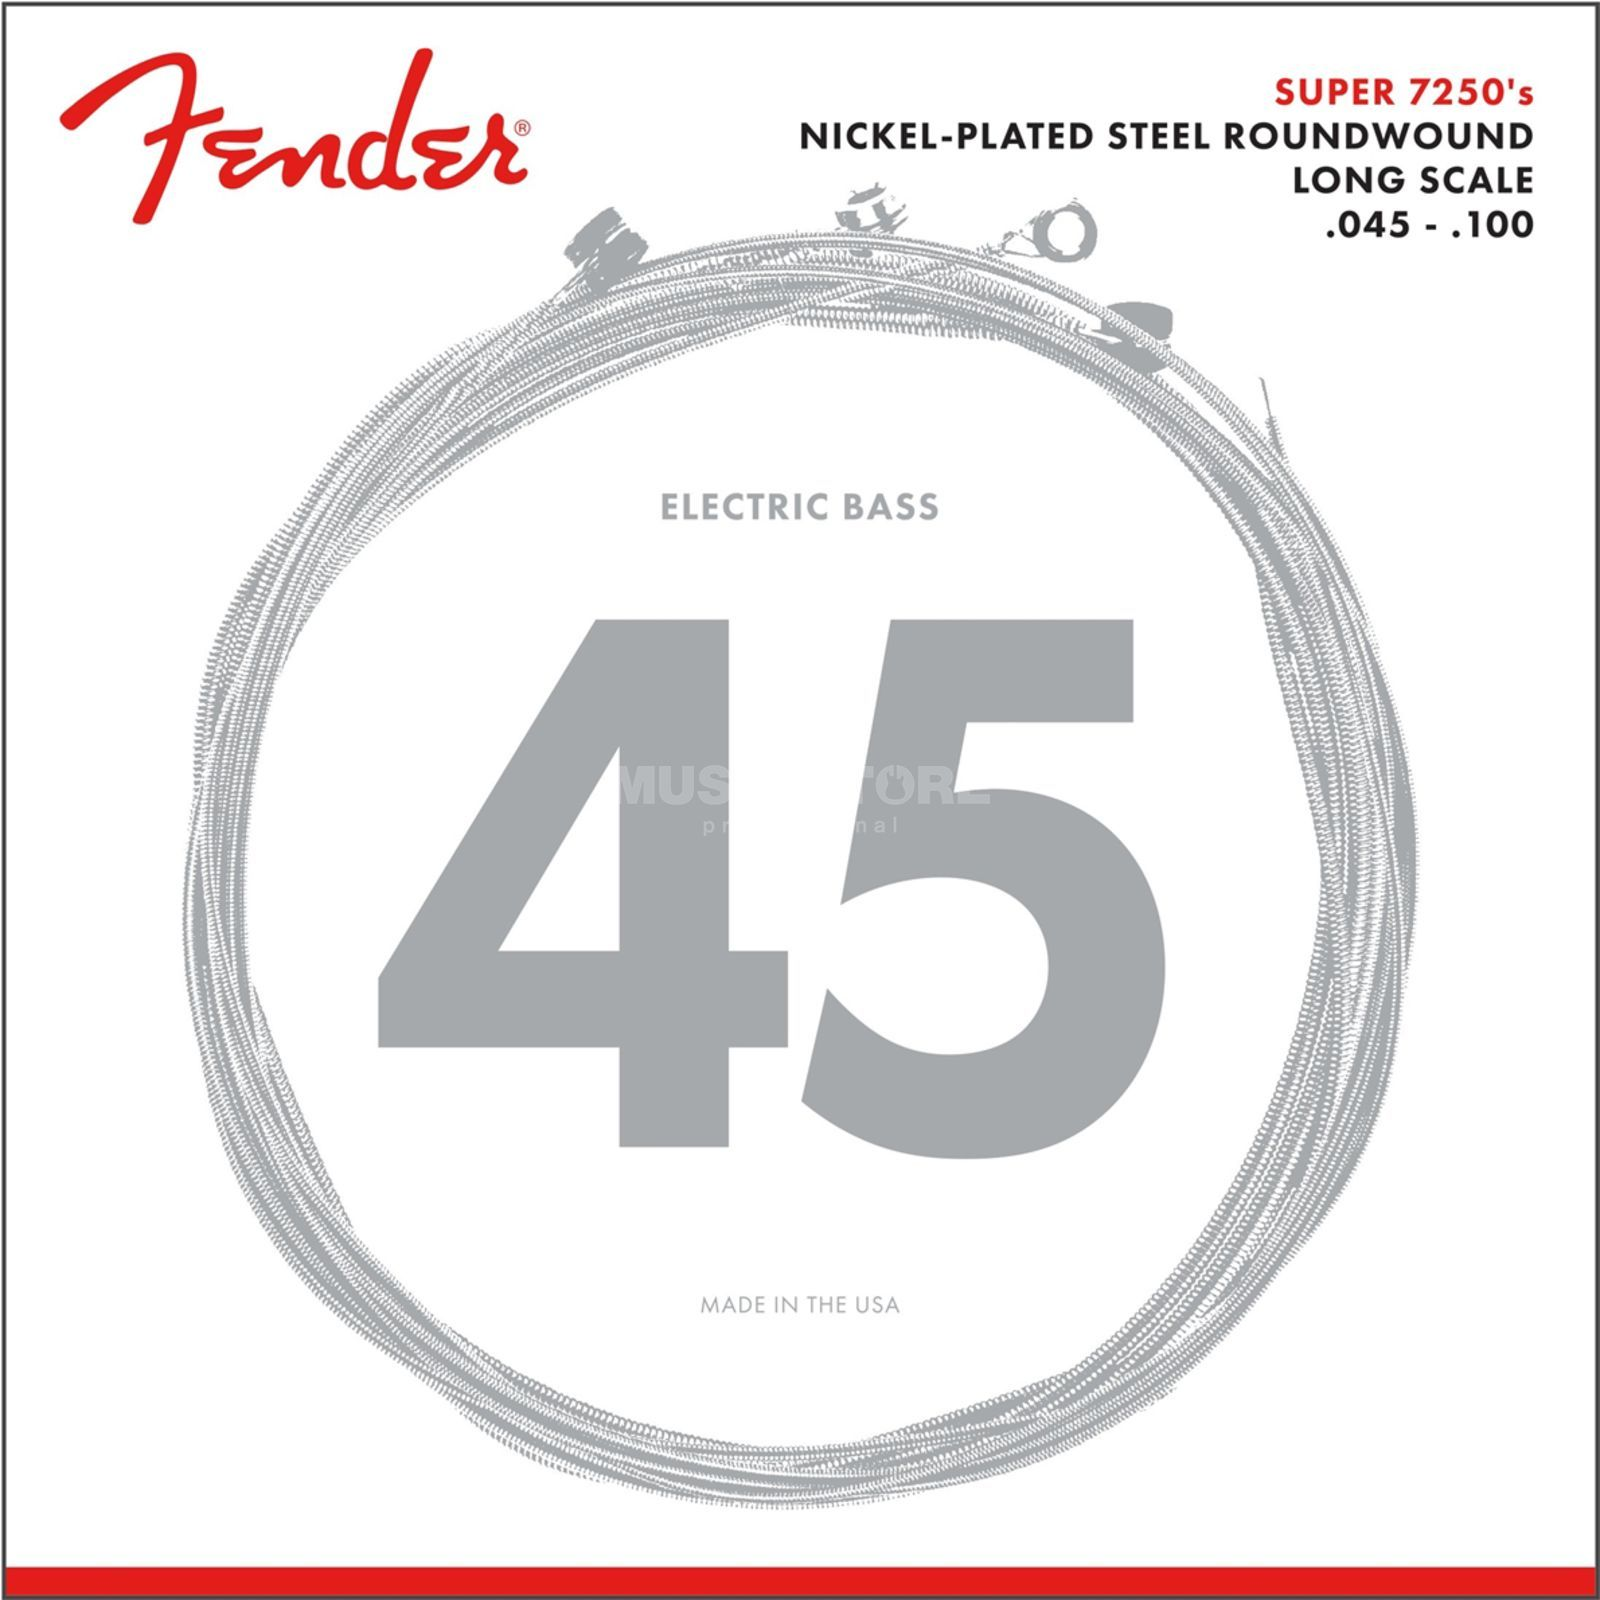 Fender Strings Super 7250 ML 45-100 Nickel Pl., Roundw. Longscale Imagem do produto